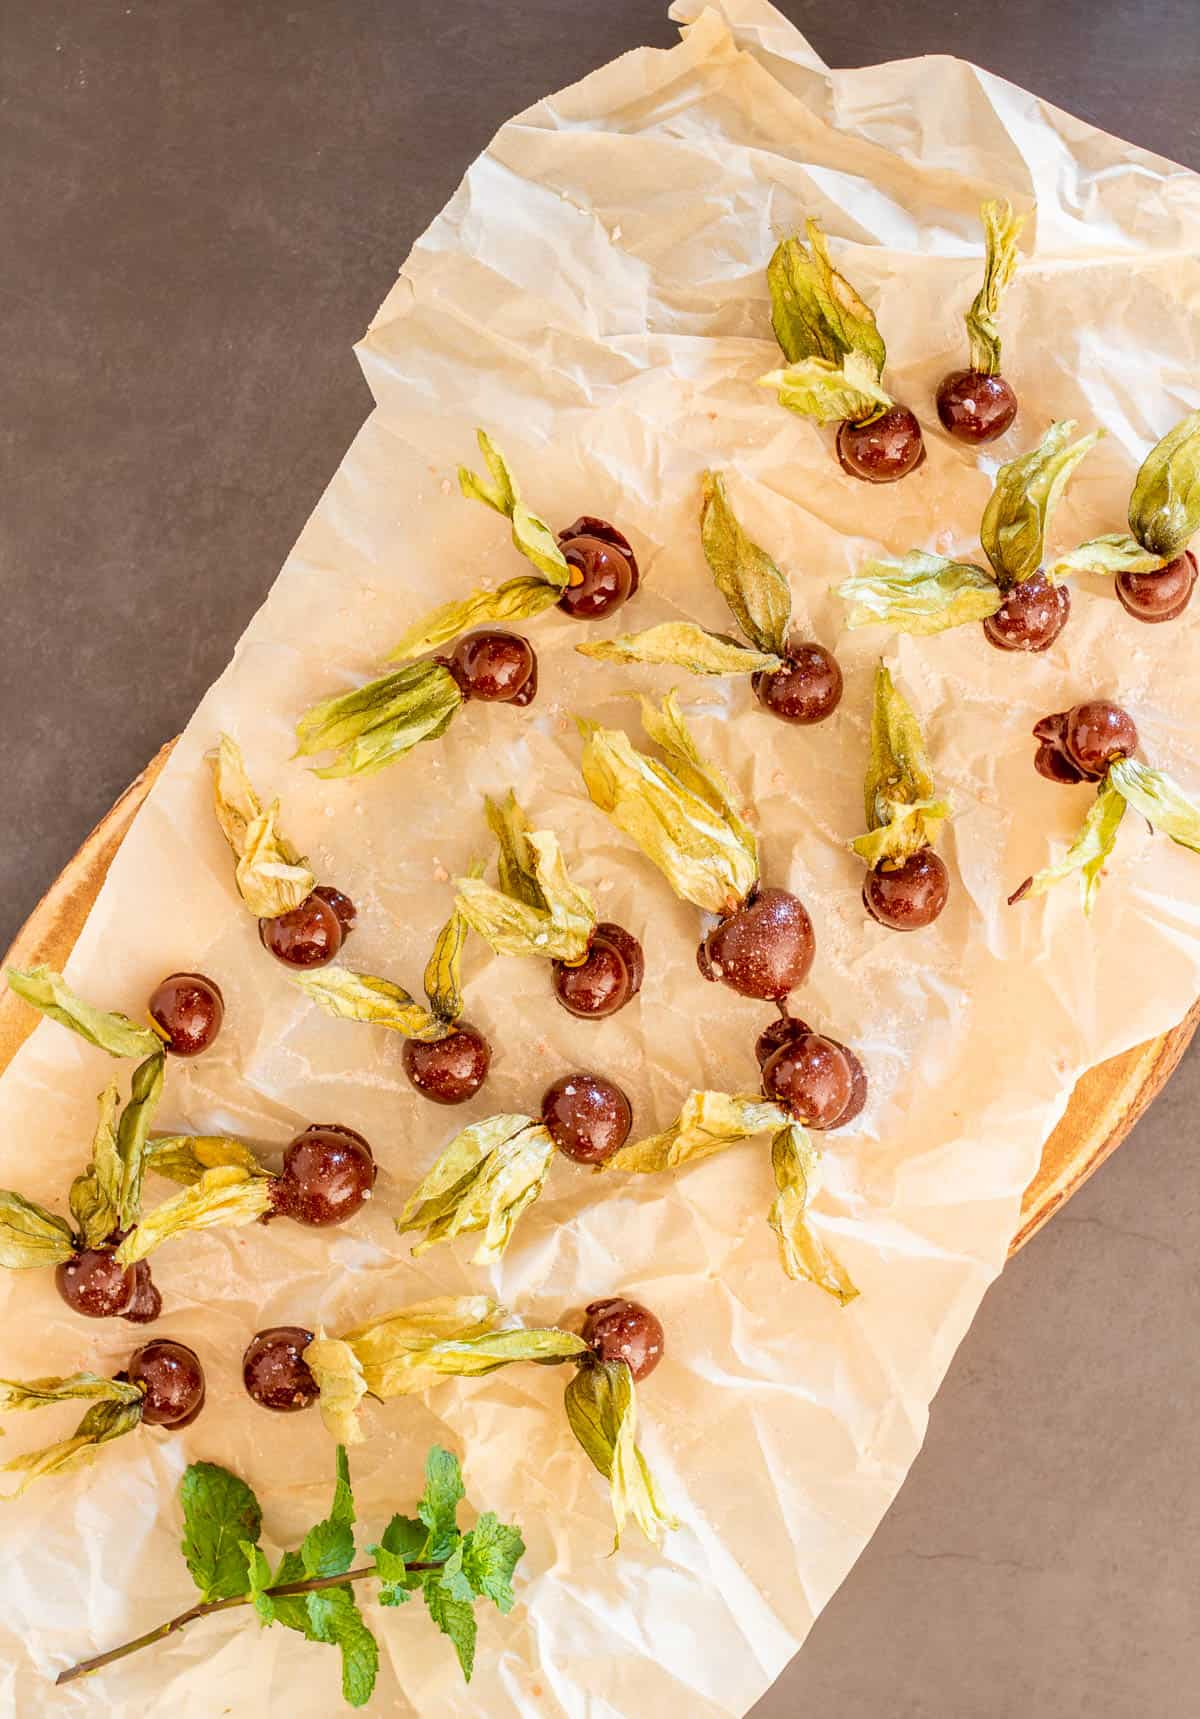 Parchment on a baking sheet with chocolate covered goldenberries.